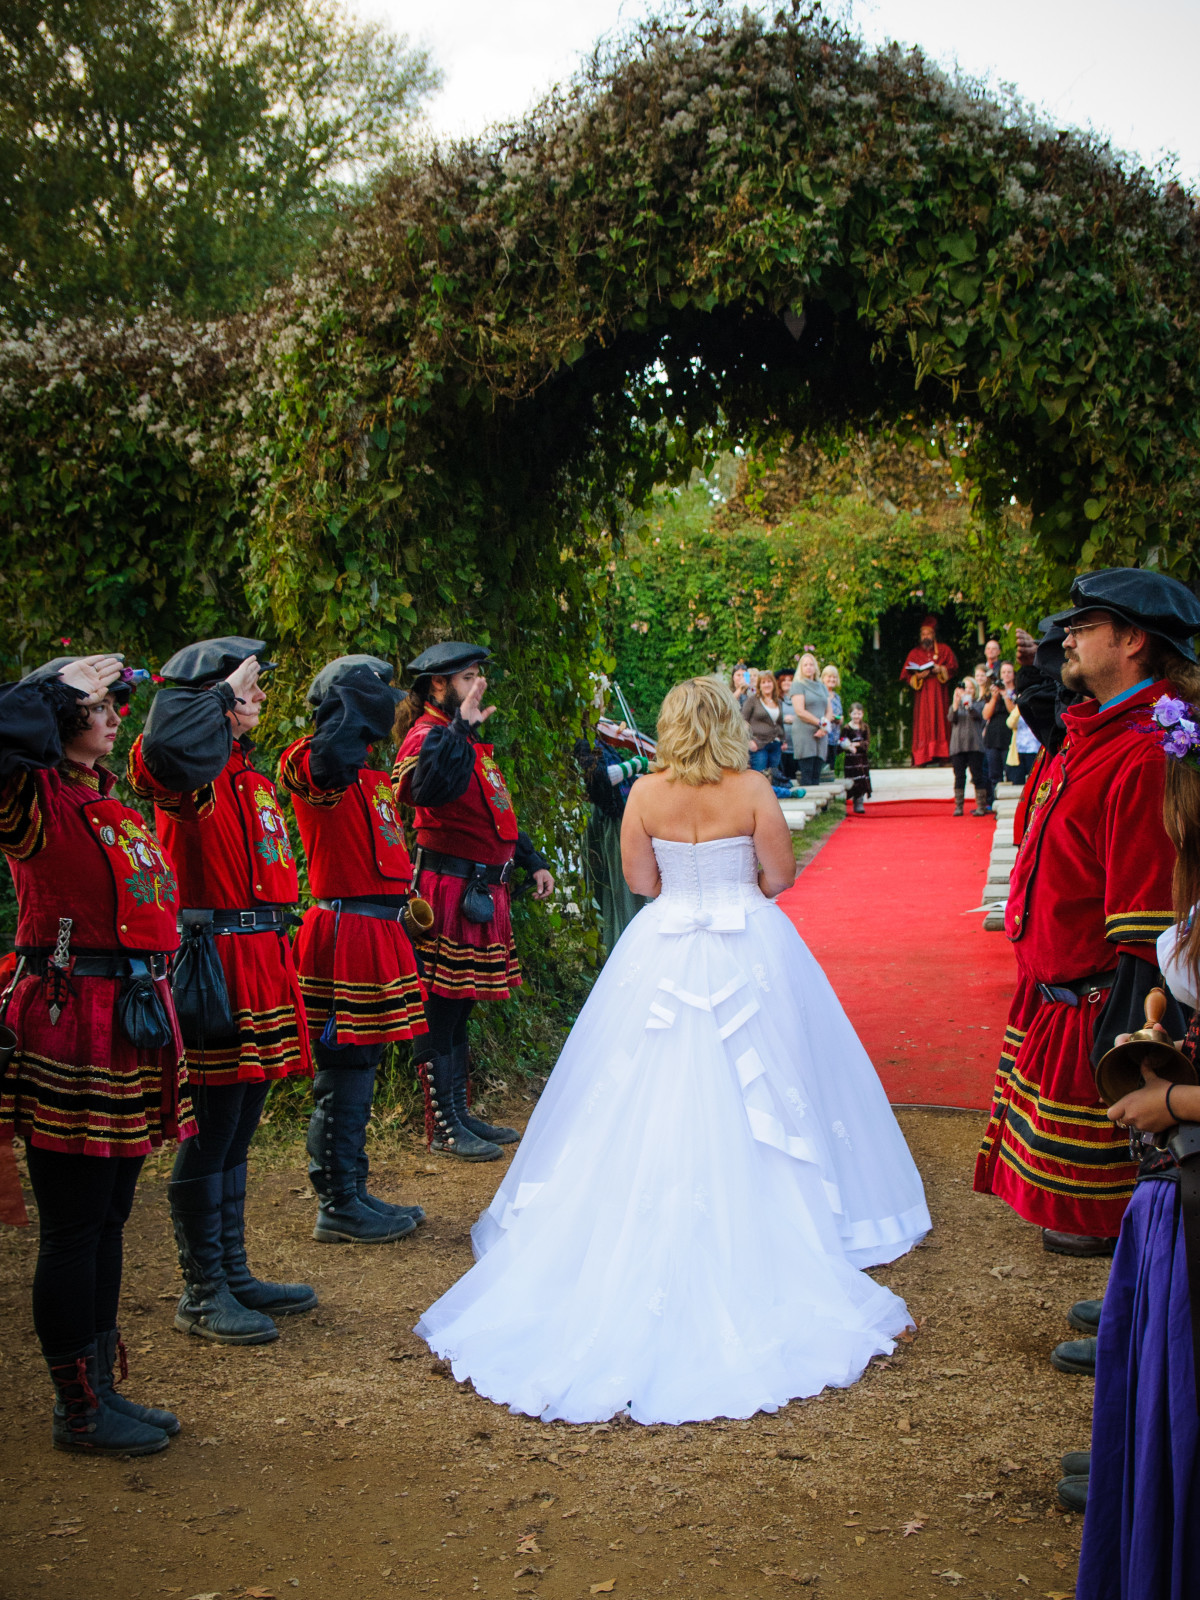 Renaissance Festival Weddings, Feb. 2016 Patty Raynor, Courtney Bohne